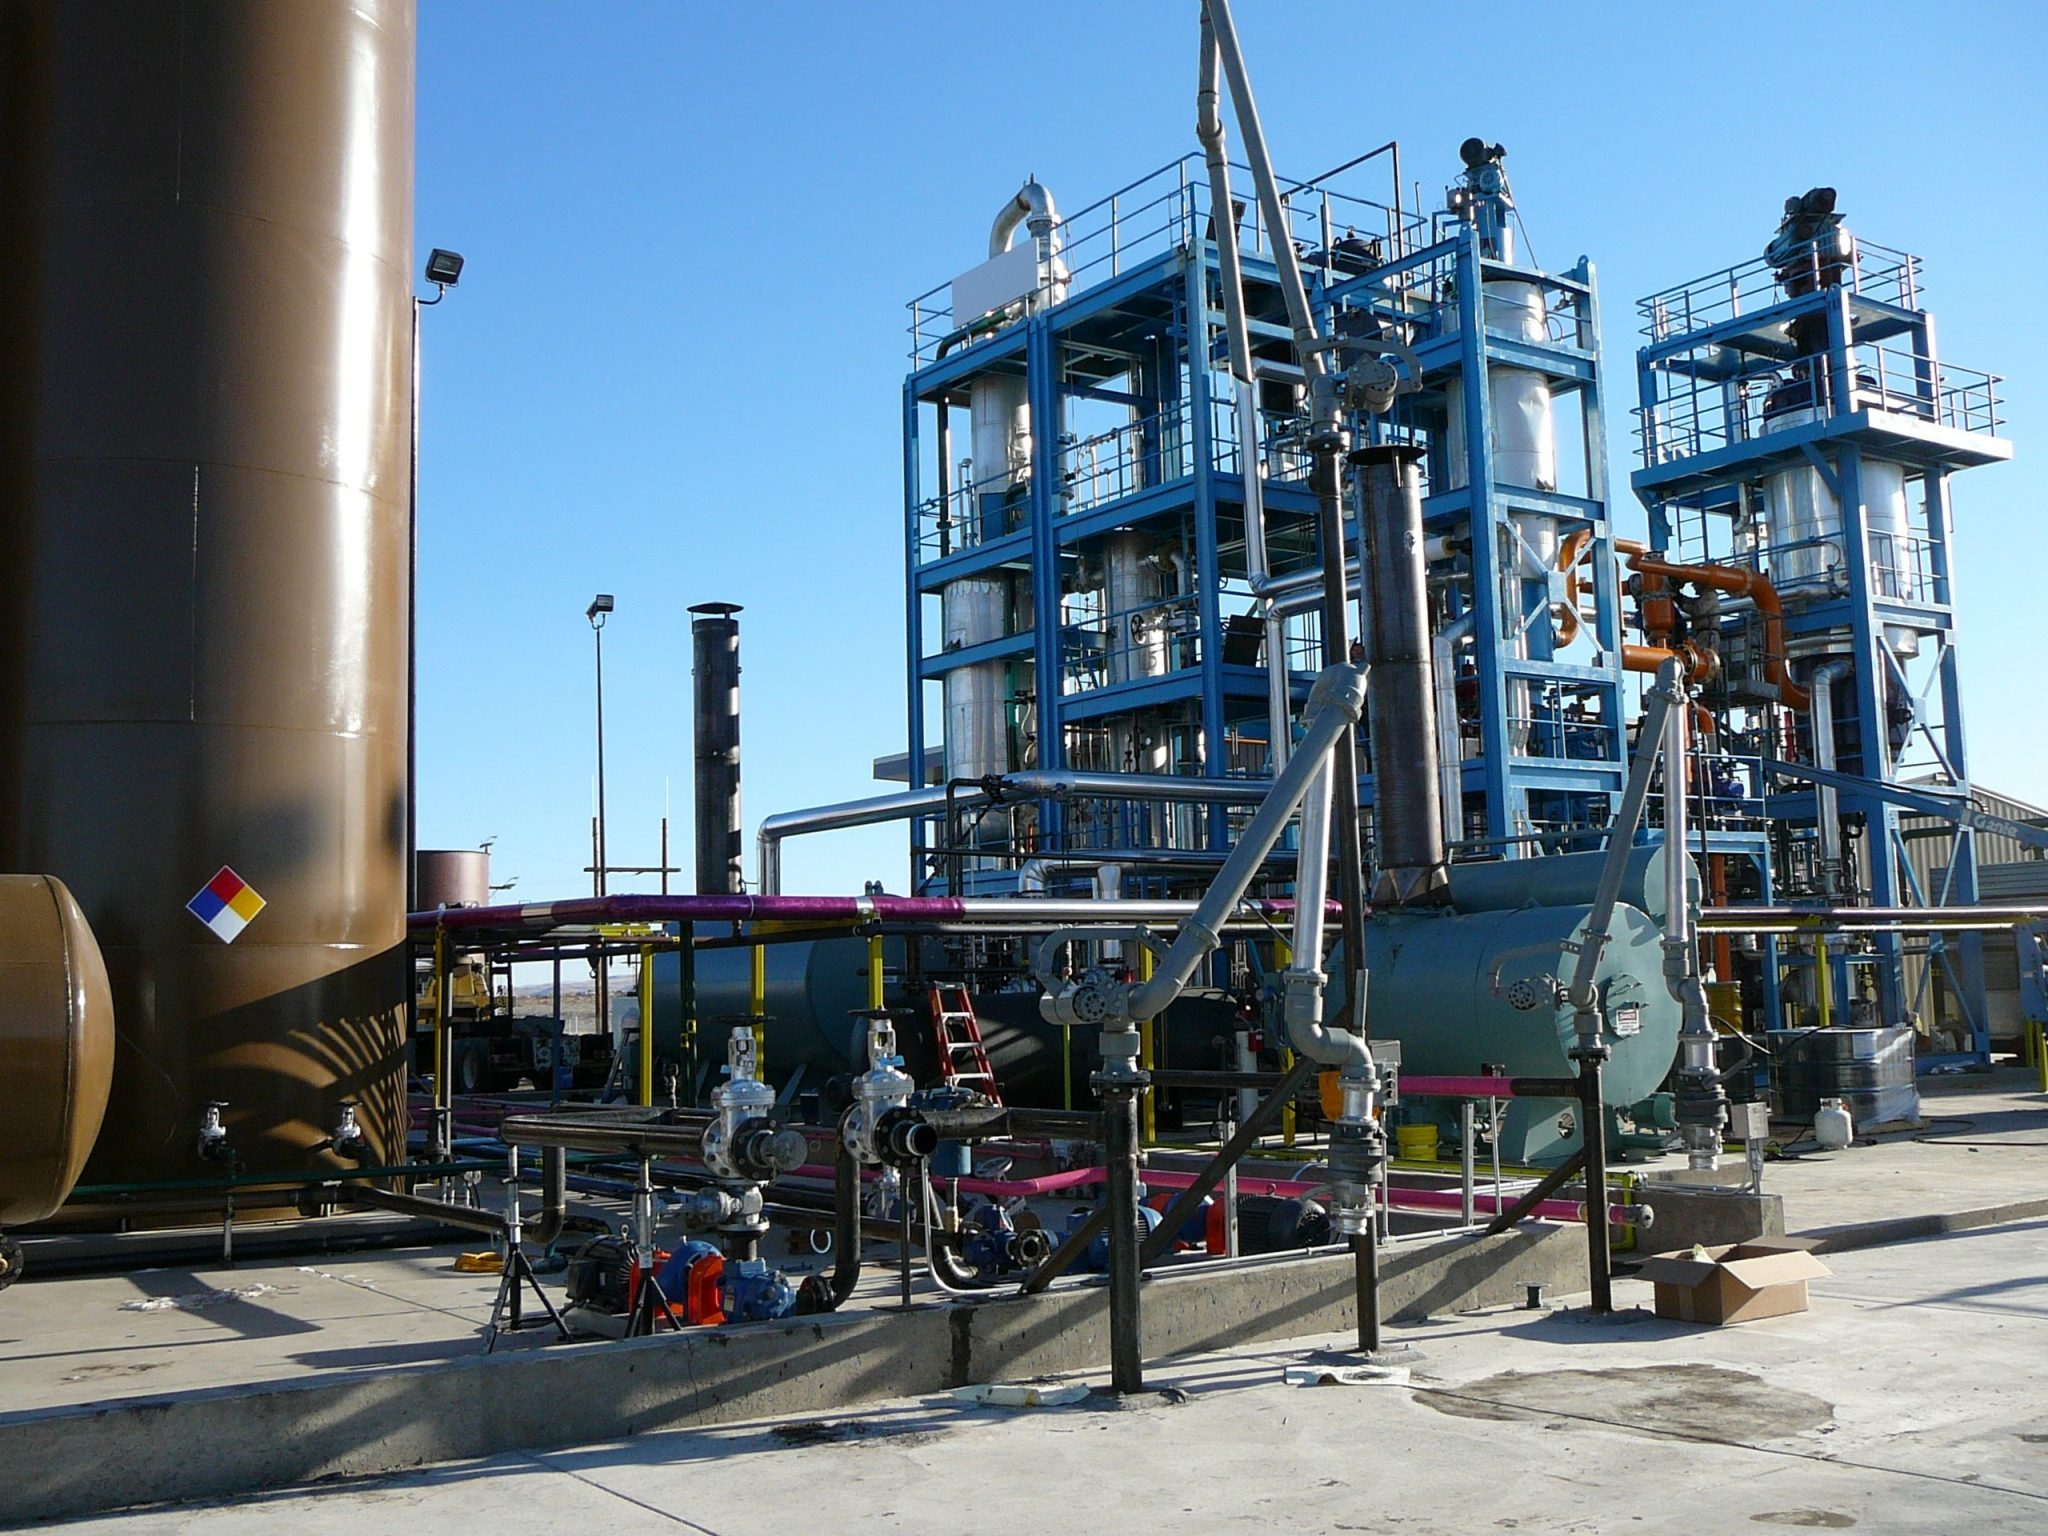 Waste oil recycling wiped film evaporator stacks 1